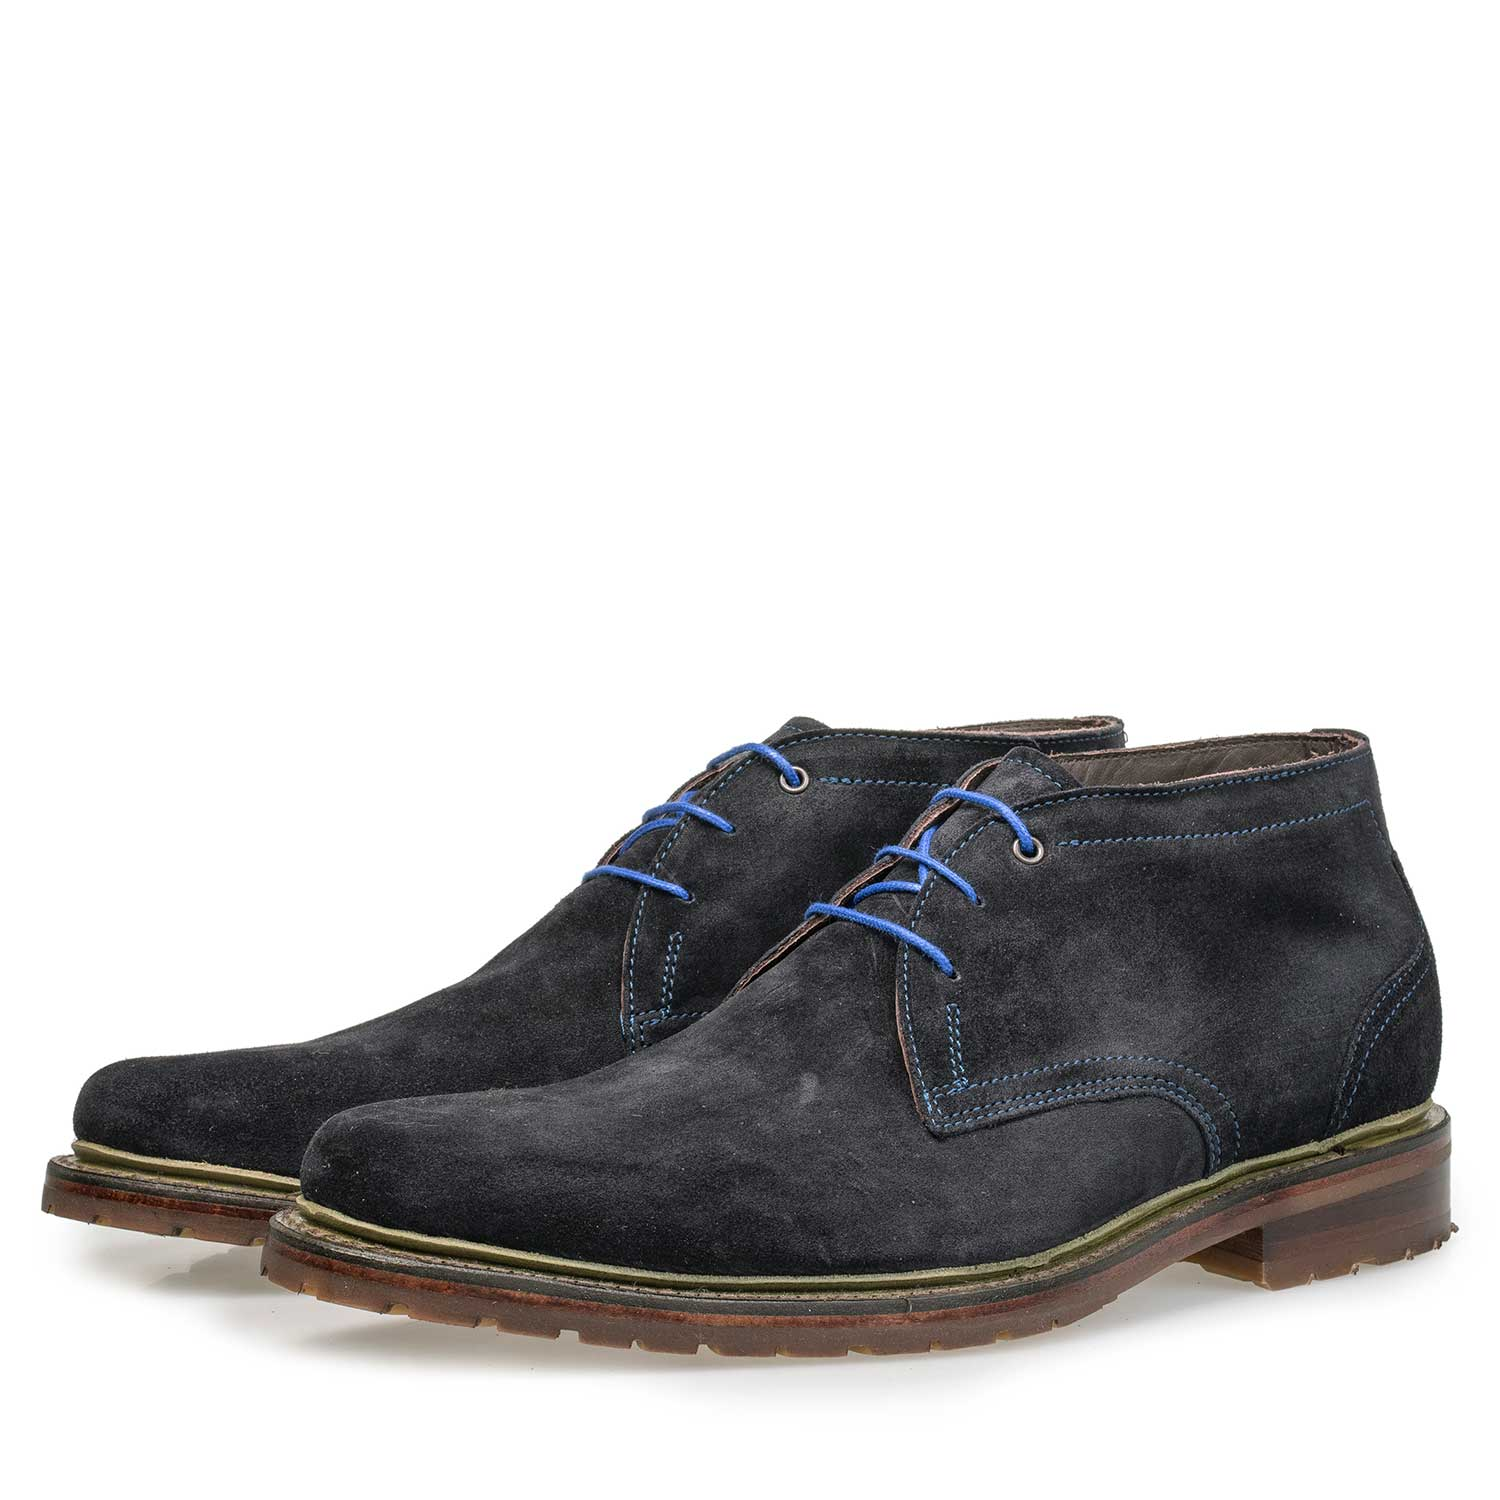 10449/00 - Dark blue suede leather lace boot